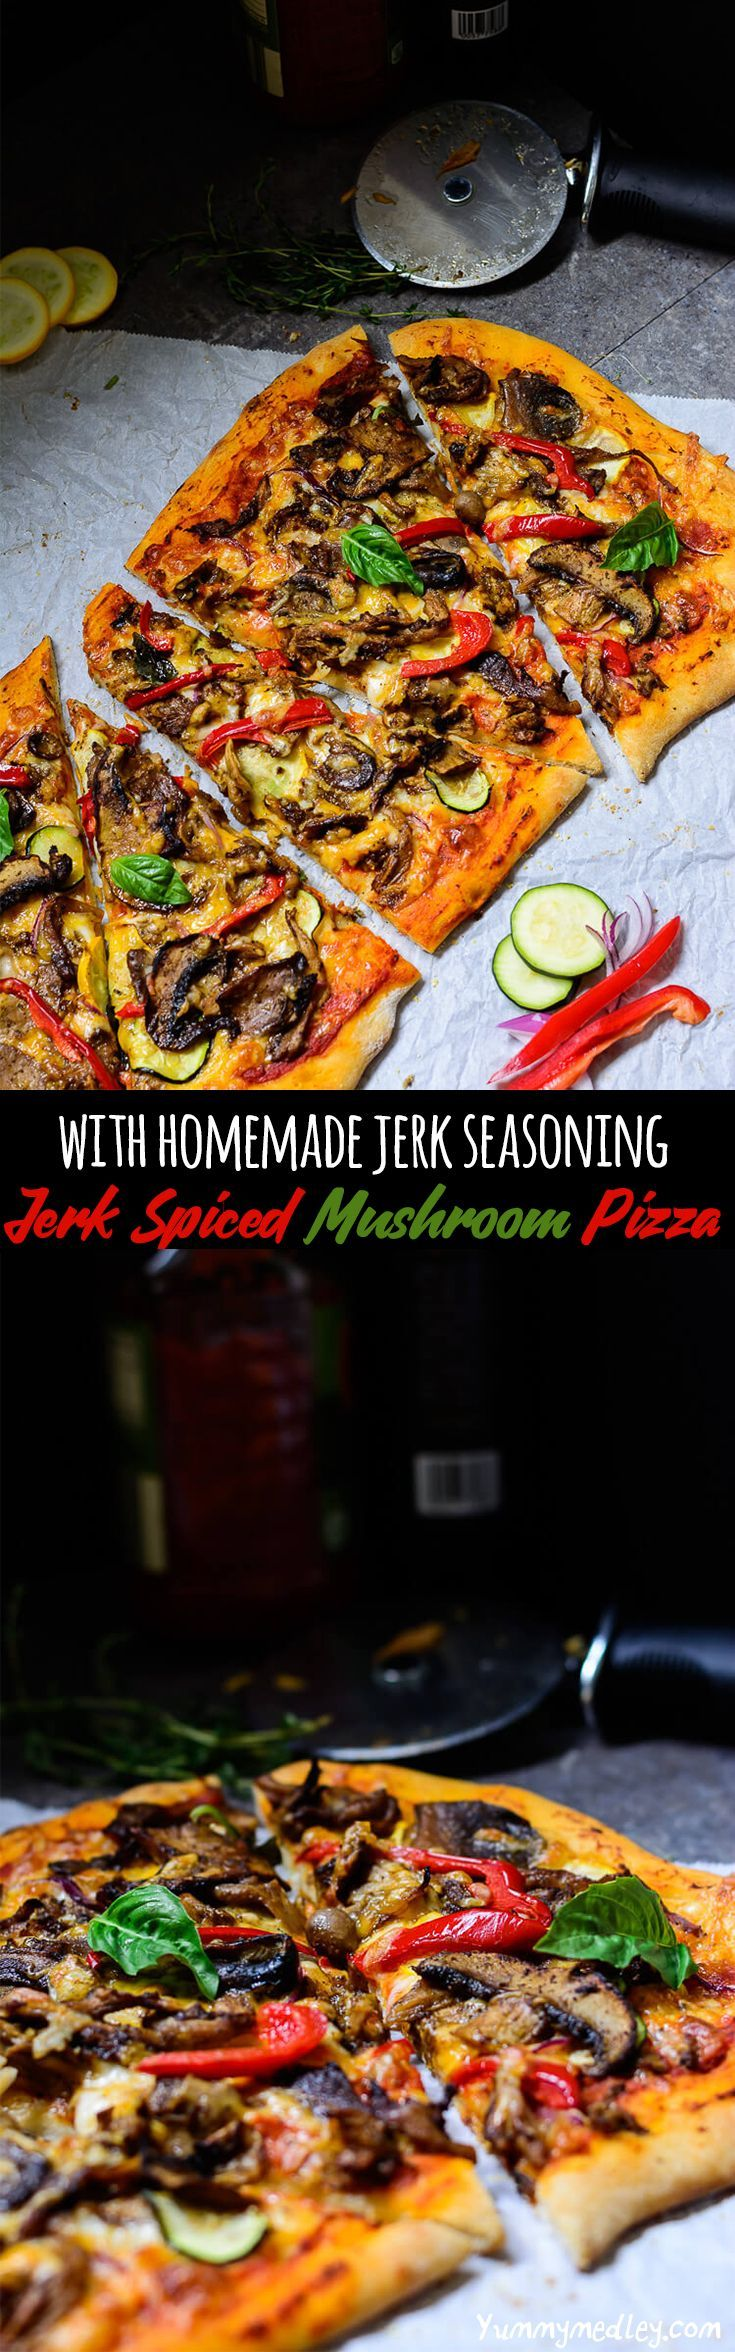 This Jerk Spiced Mushroom Pizza uses amazing flavors of homemade jerk seasoning, combines it with a medley of mushrooms (white button, straw, portabella/portobello and oyster) to produce the best mushroom pizza ever!